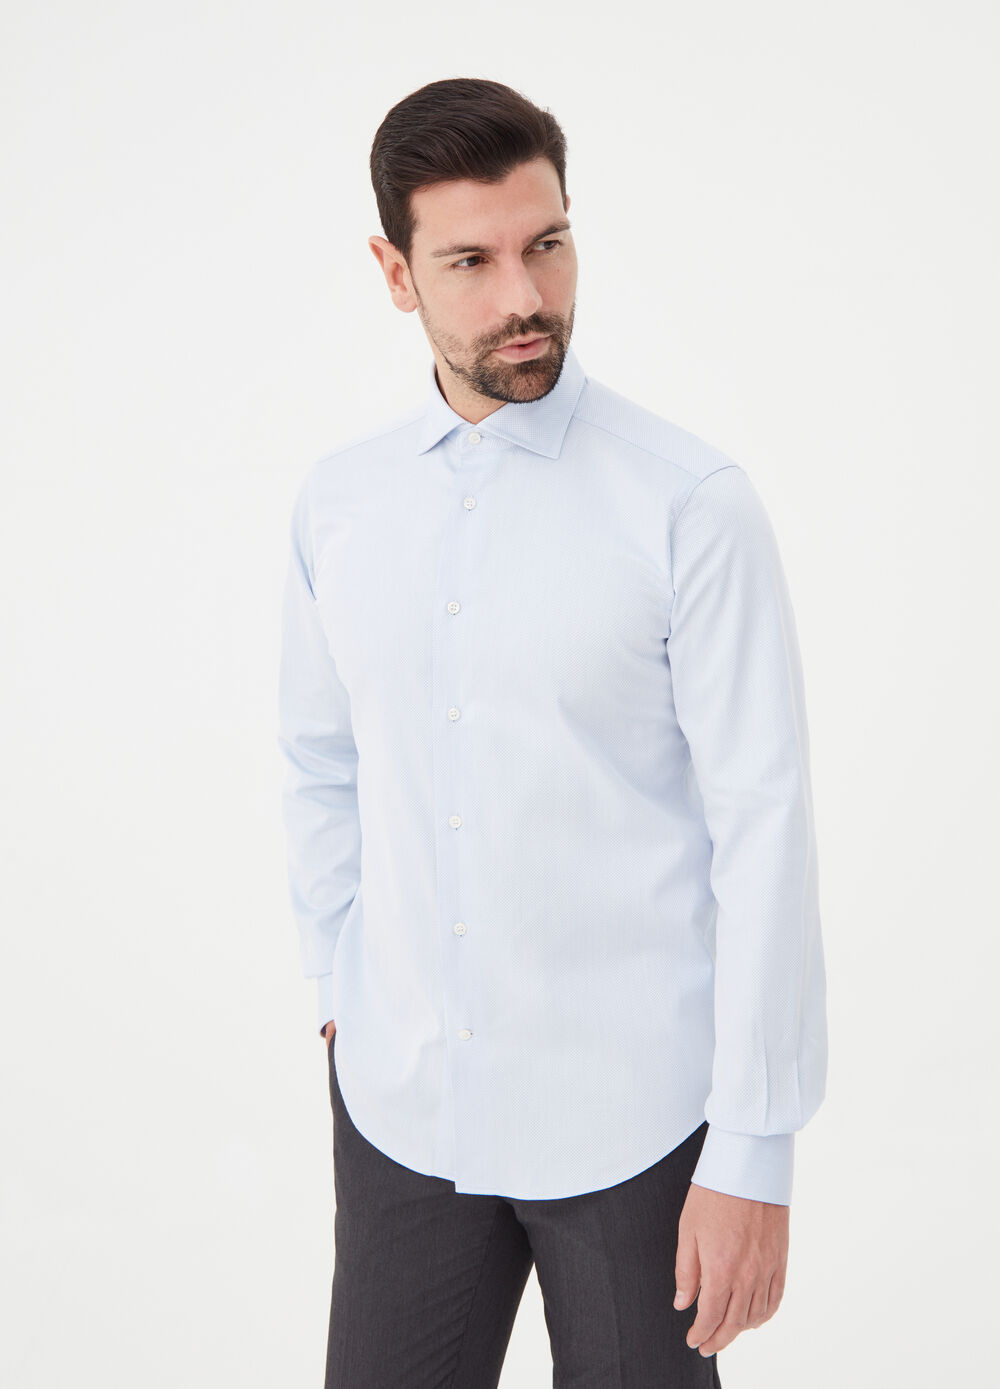 Slim-fit shirt with hexagonal cuffs